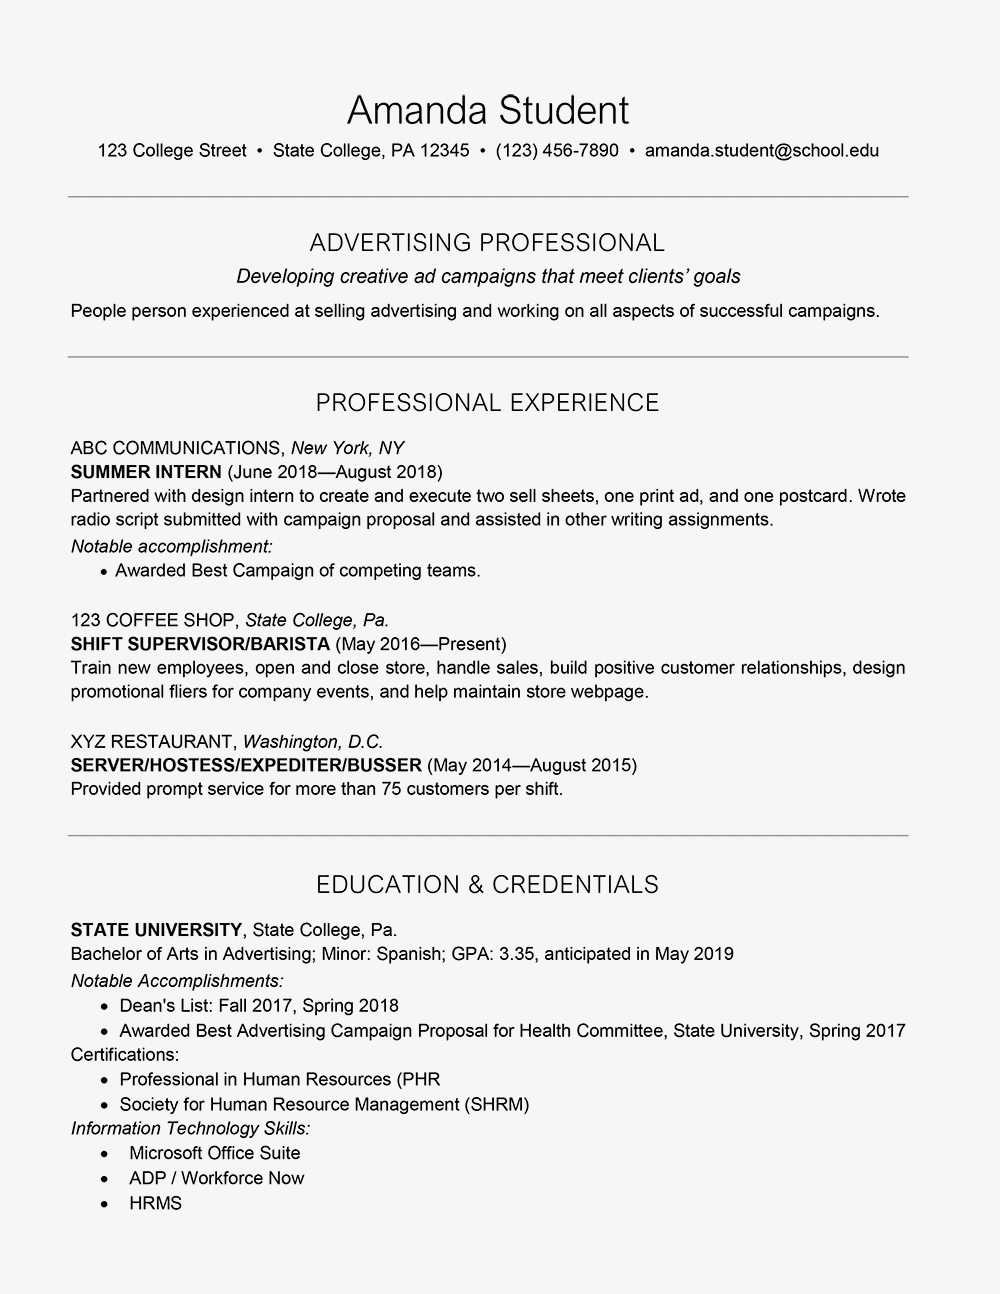 best student resume - Parfu kaptanband co